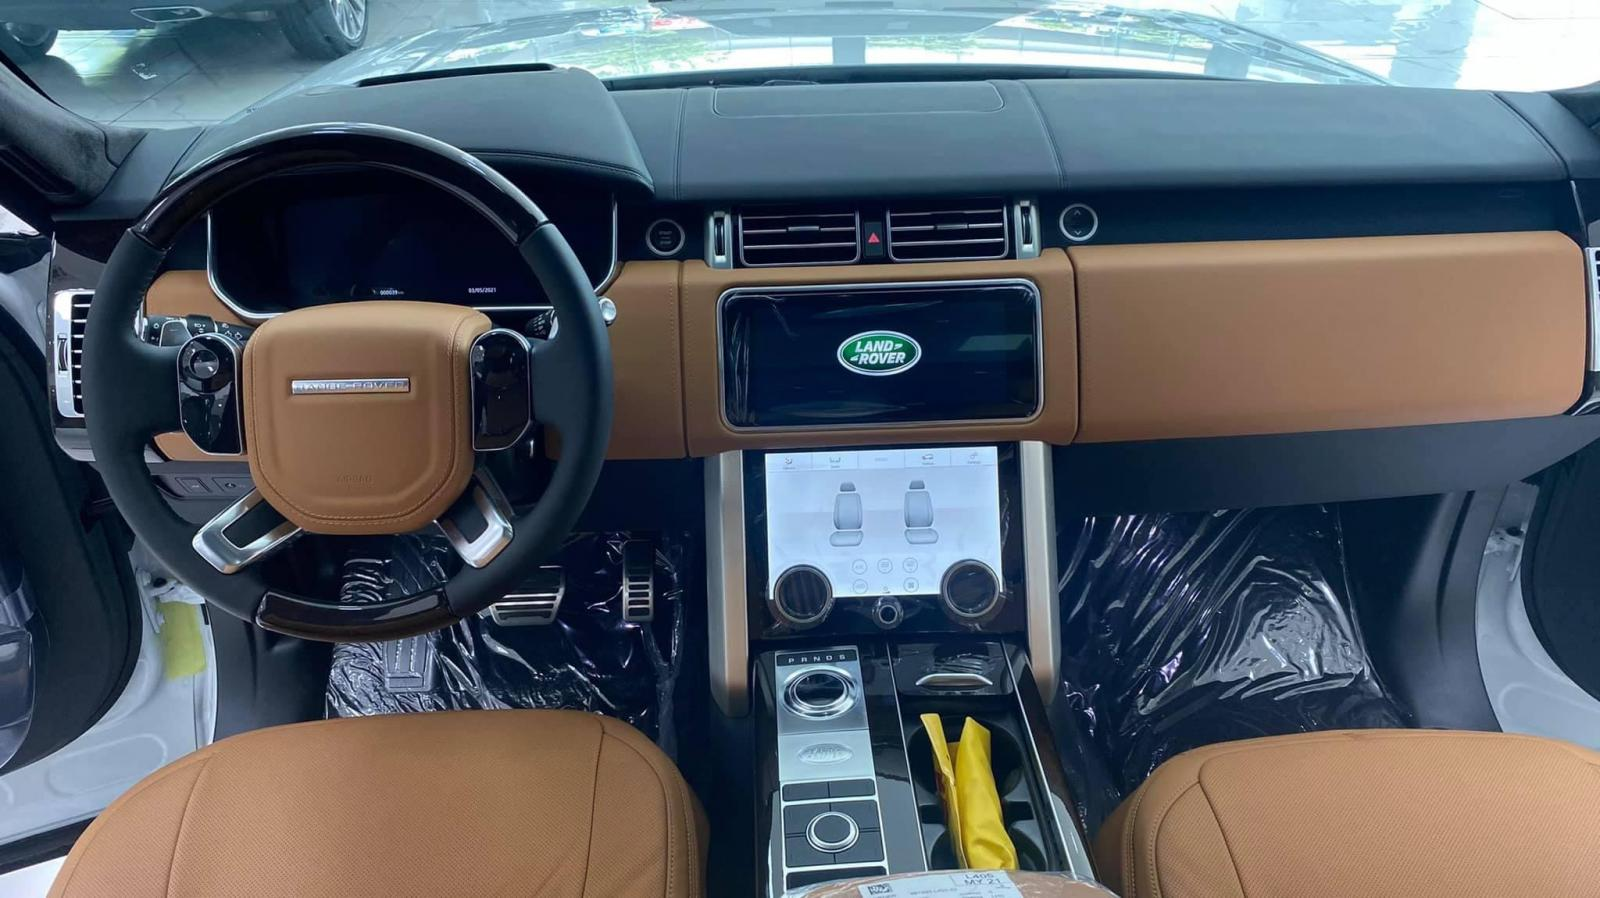 Bán LandRover Range Rover Autobiography L 3.0, sản xuất 2021, xe giao ngay